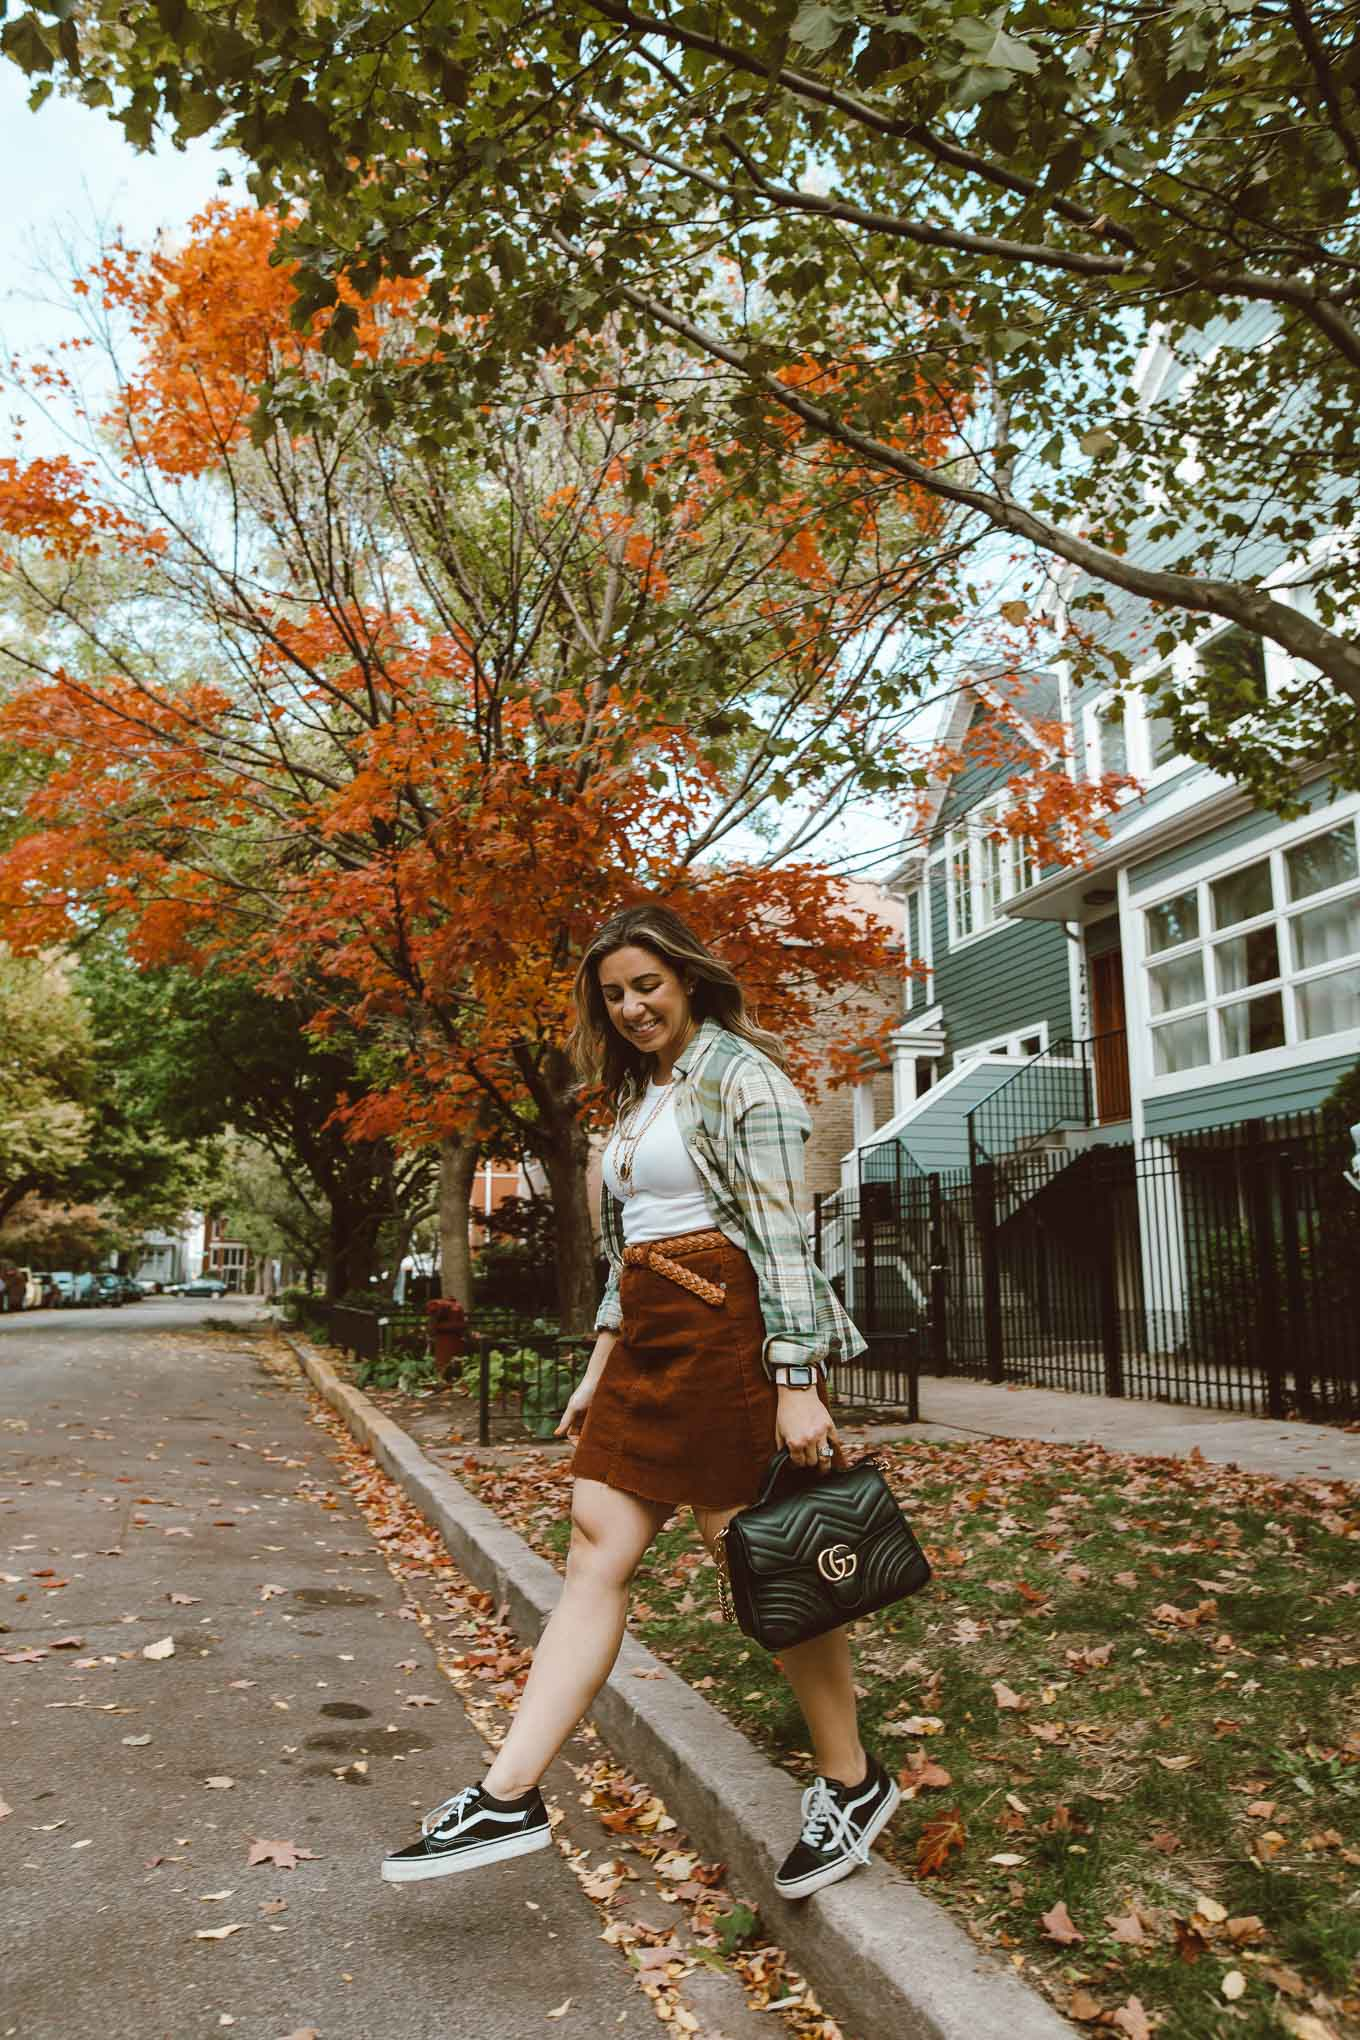 90's Fashion by popular Chicago fashion blog, Glass of Glam: image of a woman walking outside and wearing a corduroy skirt, Vans sneakers, flannel shirt, Target white tank top, Kendra Scott Davis Multistrand Necklace, and holding a Gucci bag.